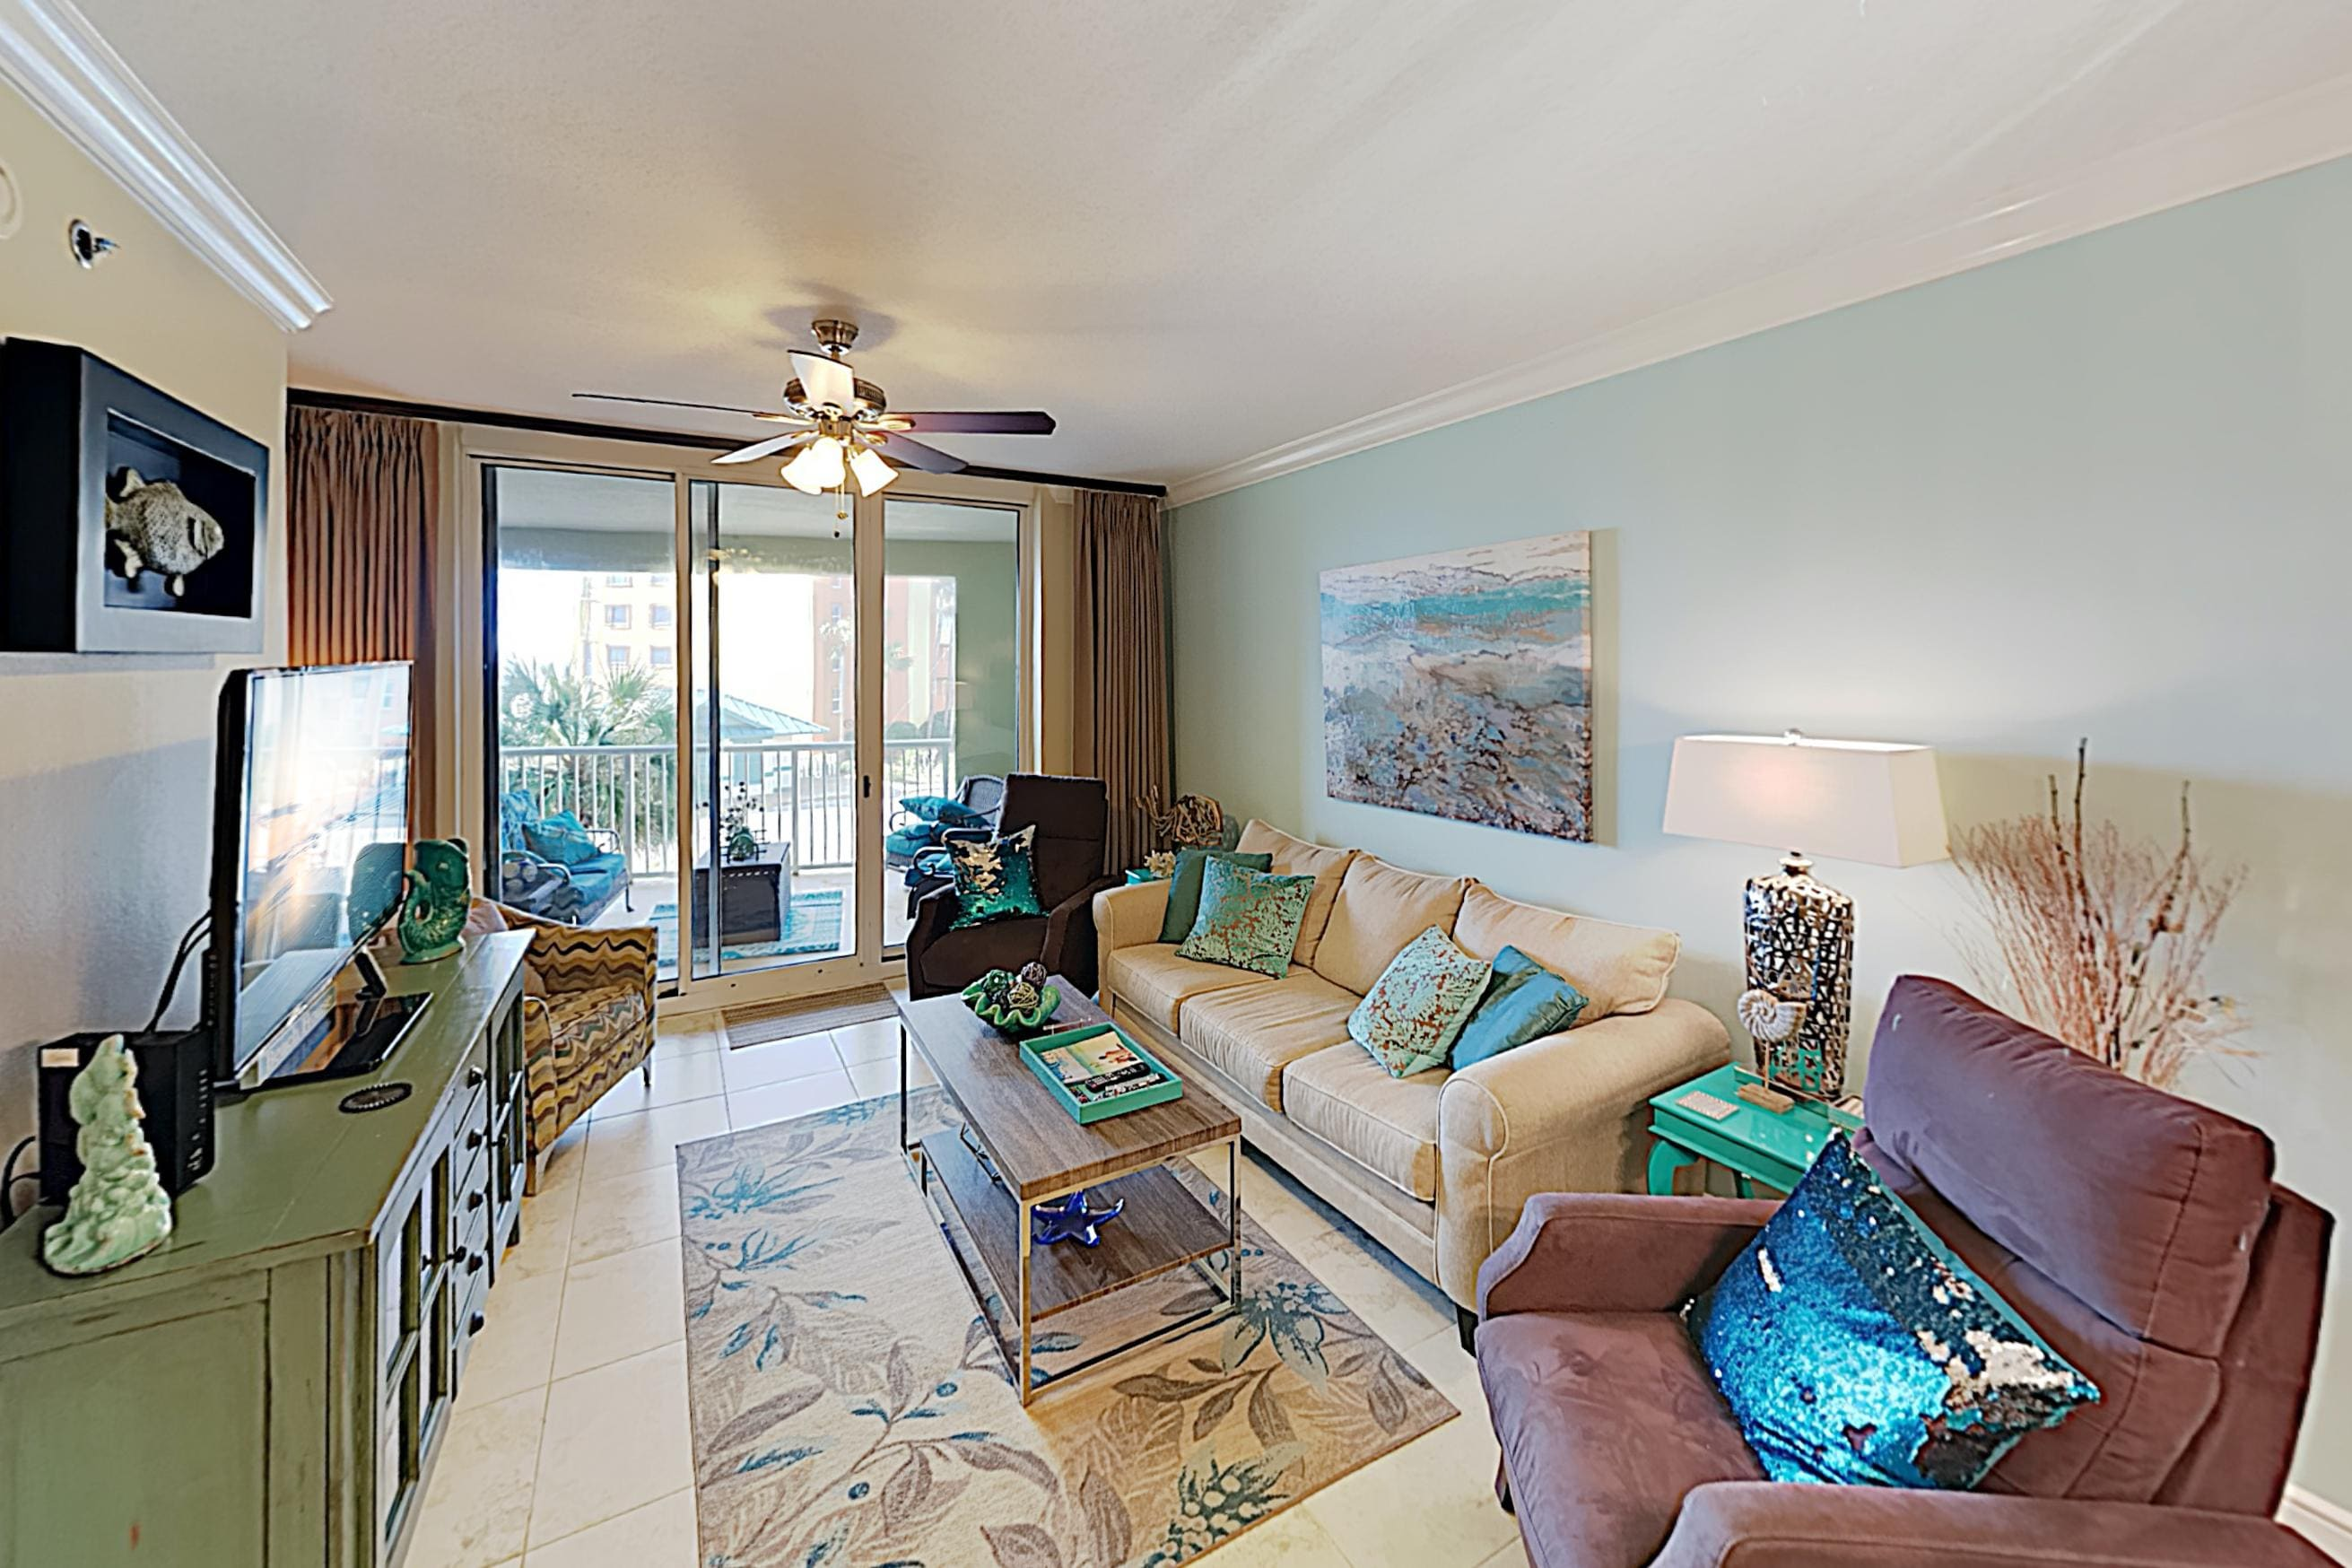 Welcome to Fort Walton Beach! This condo is professionally managed by TurnKey Vacation Rentals.